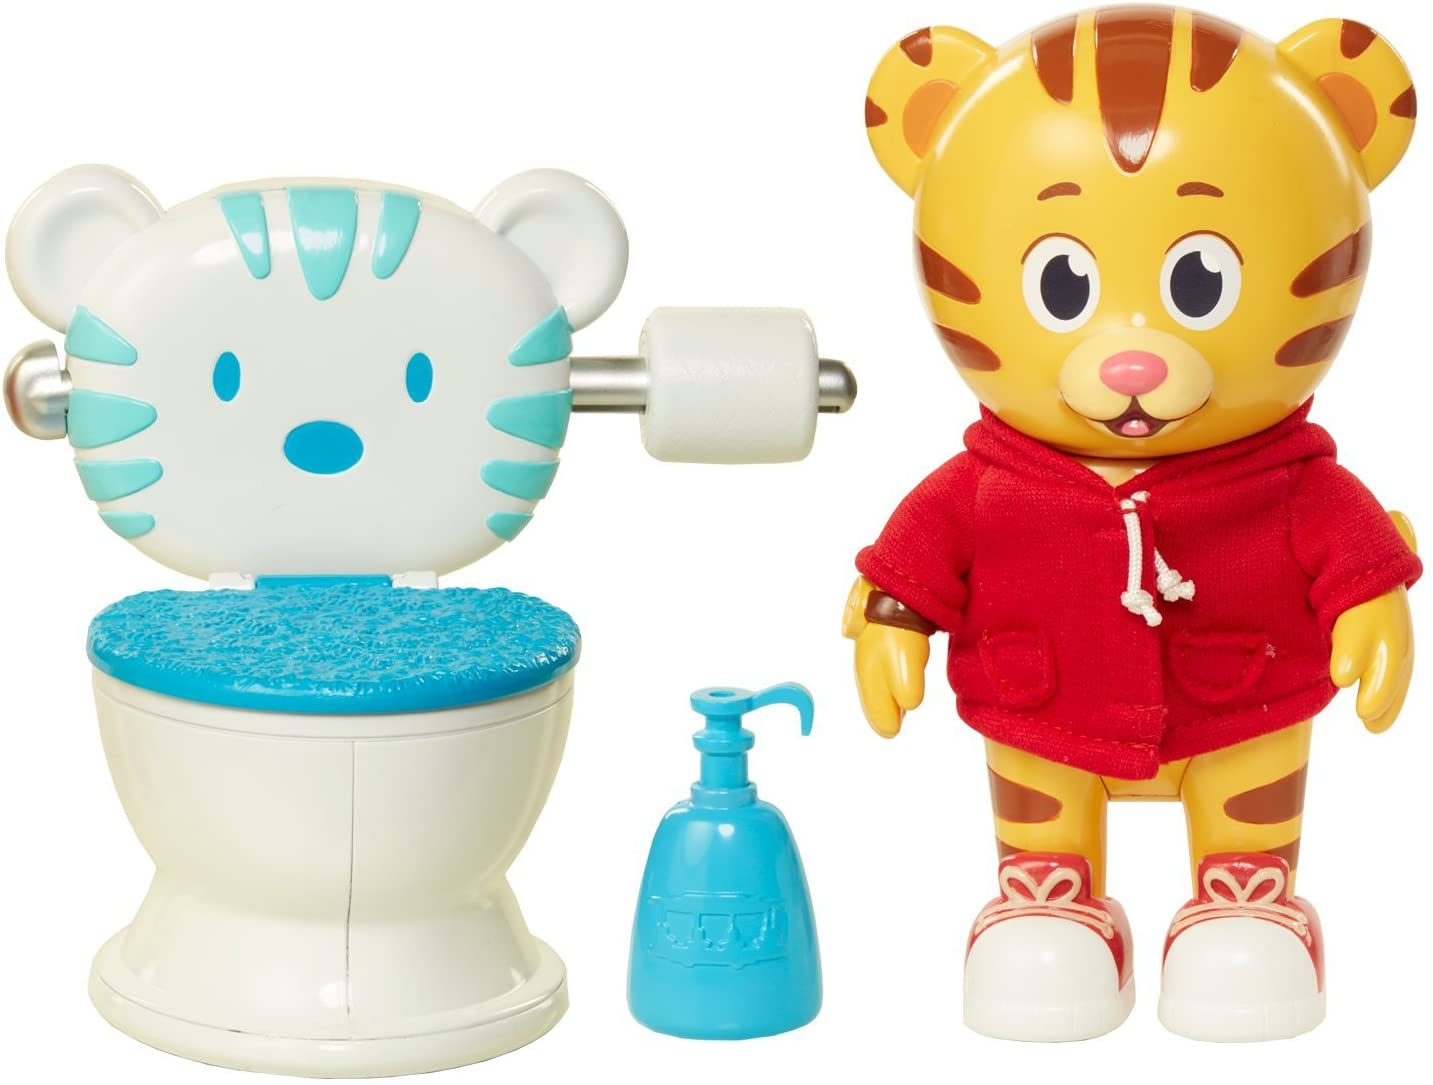 Daniel Tiger's Neighborhood Potty Time Toy